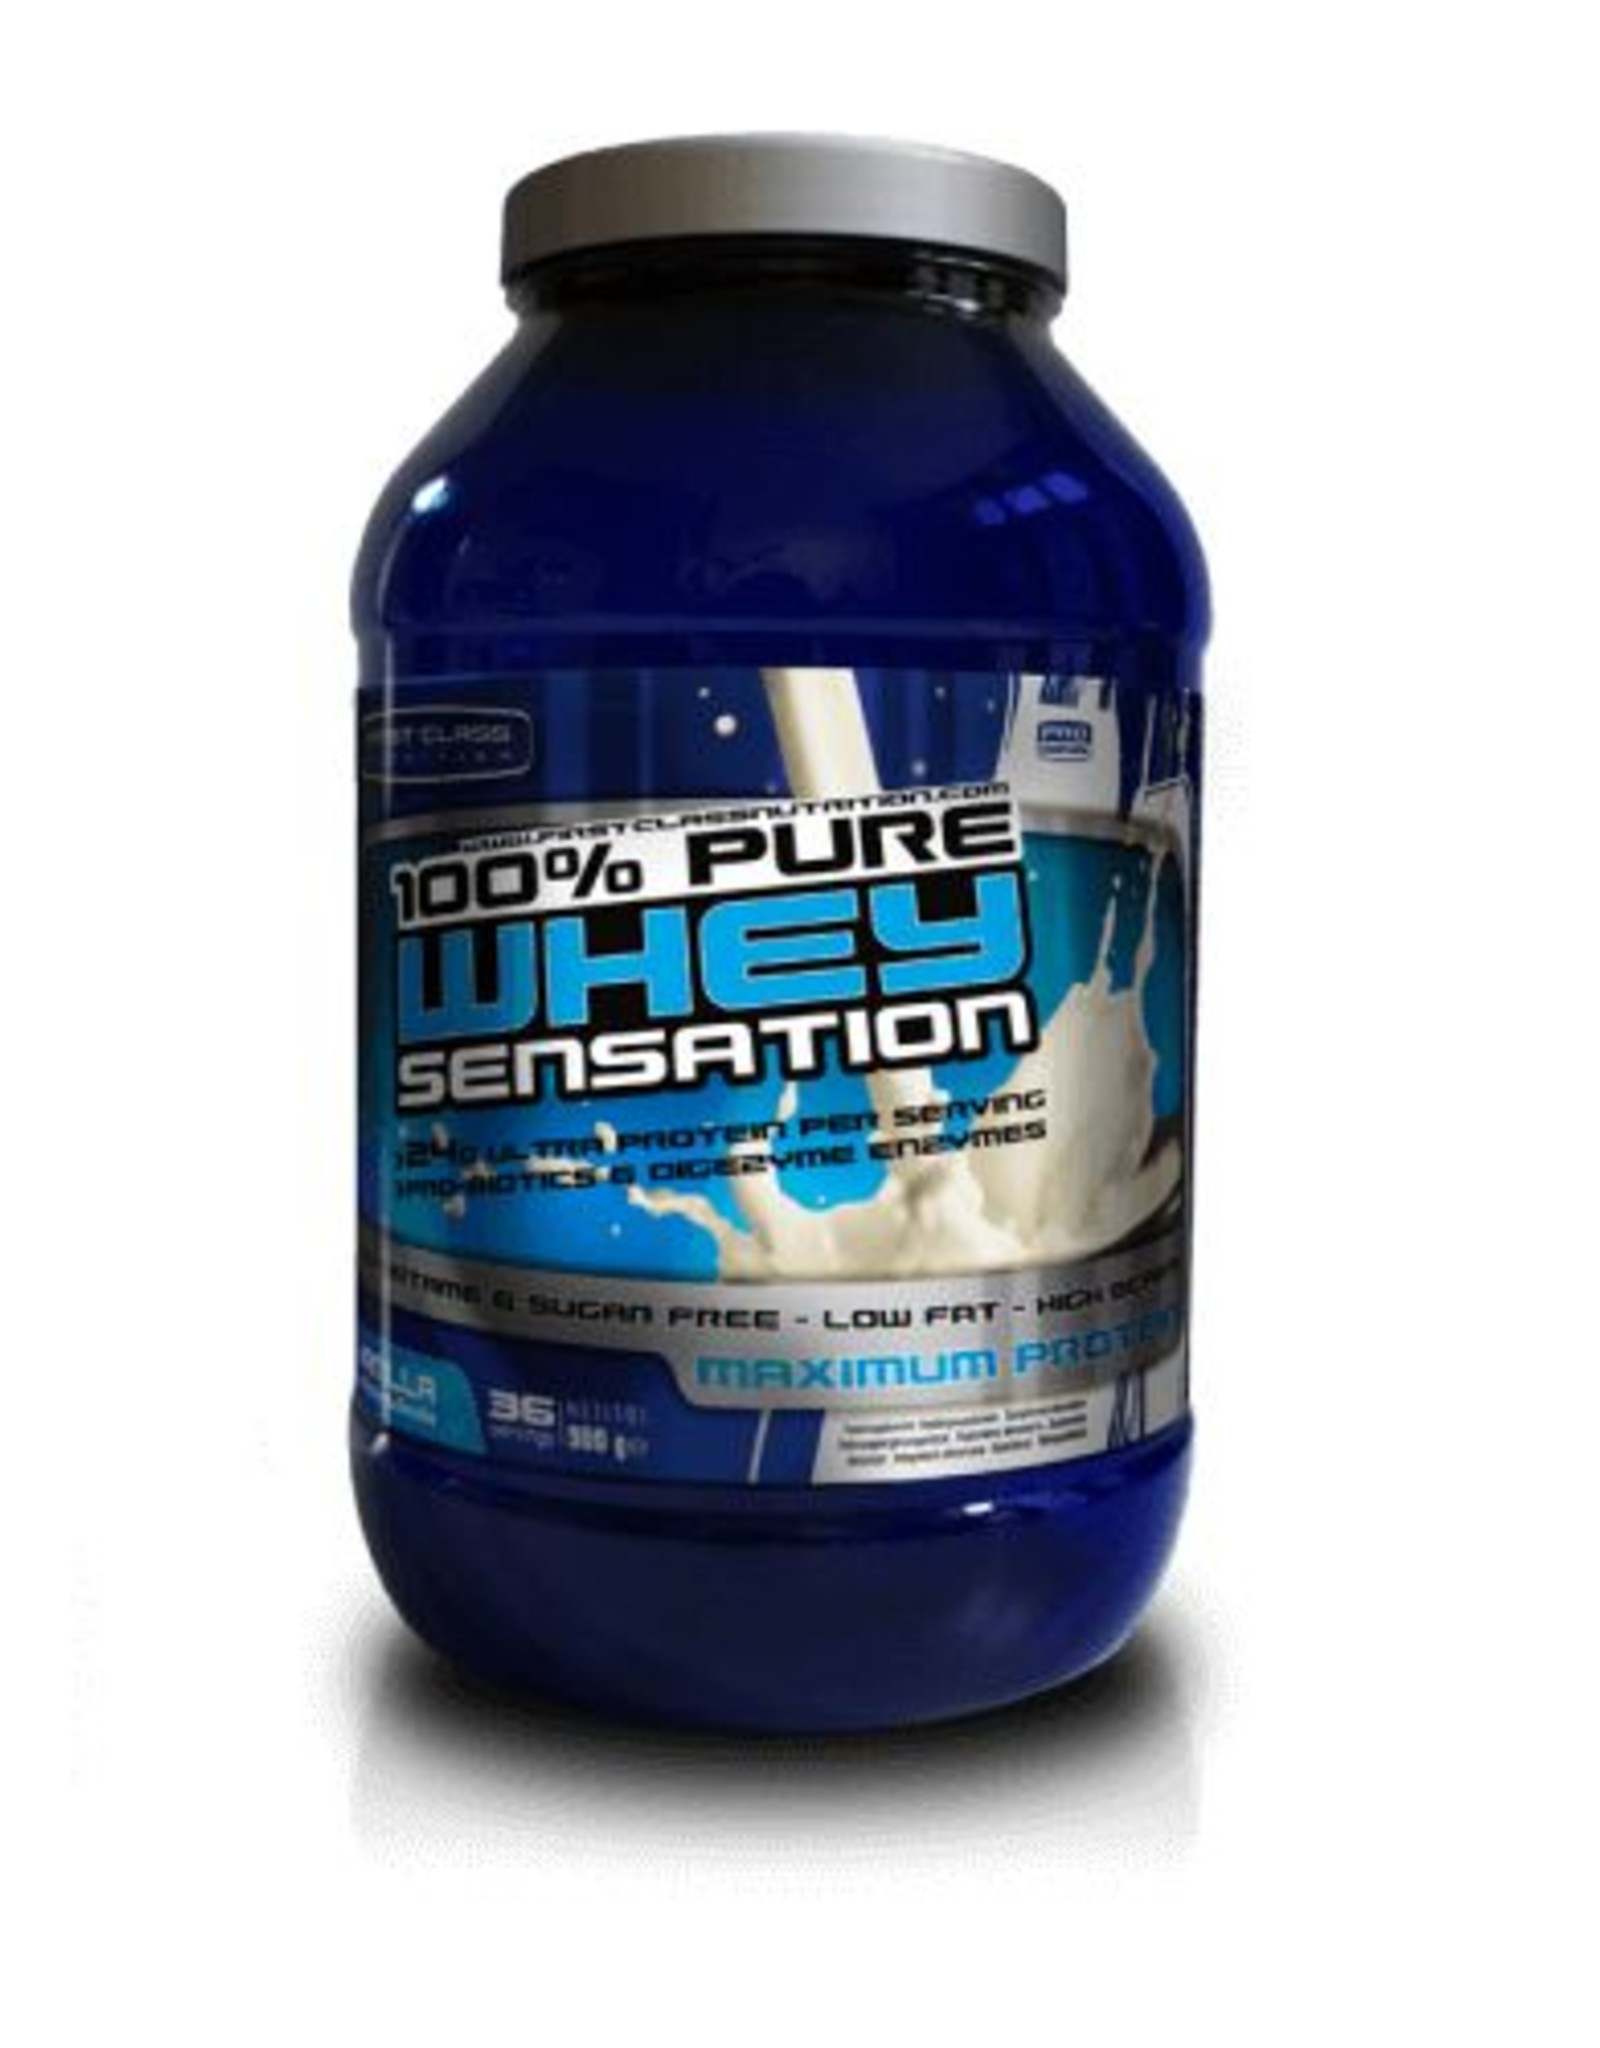 First class nutrition Whey sensation vanille